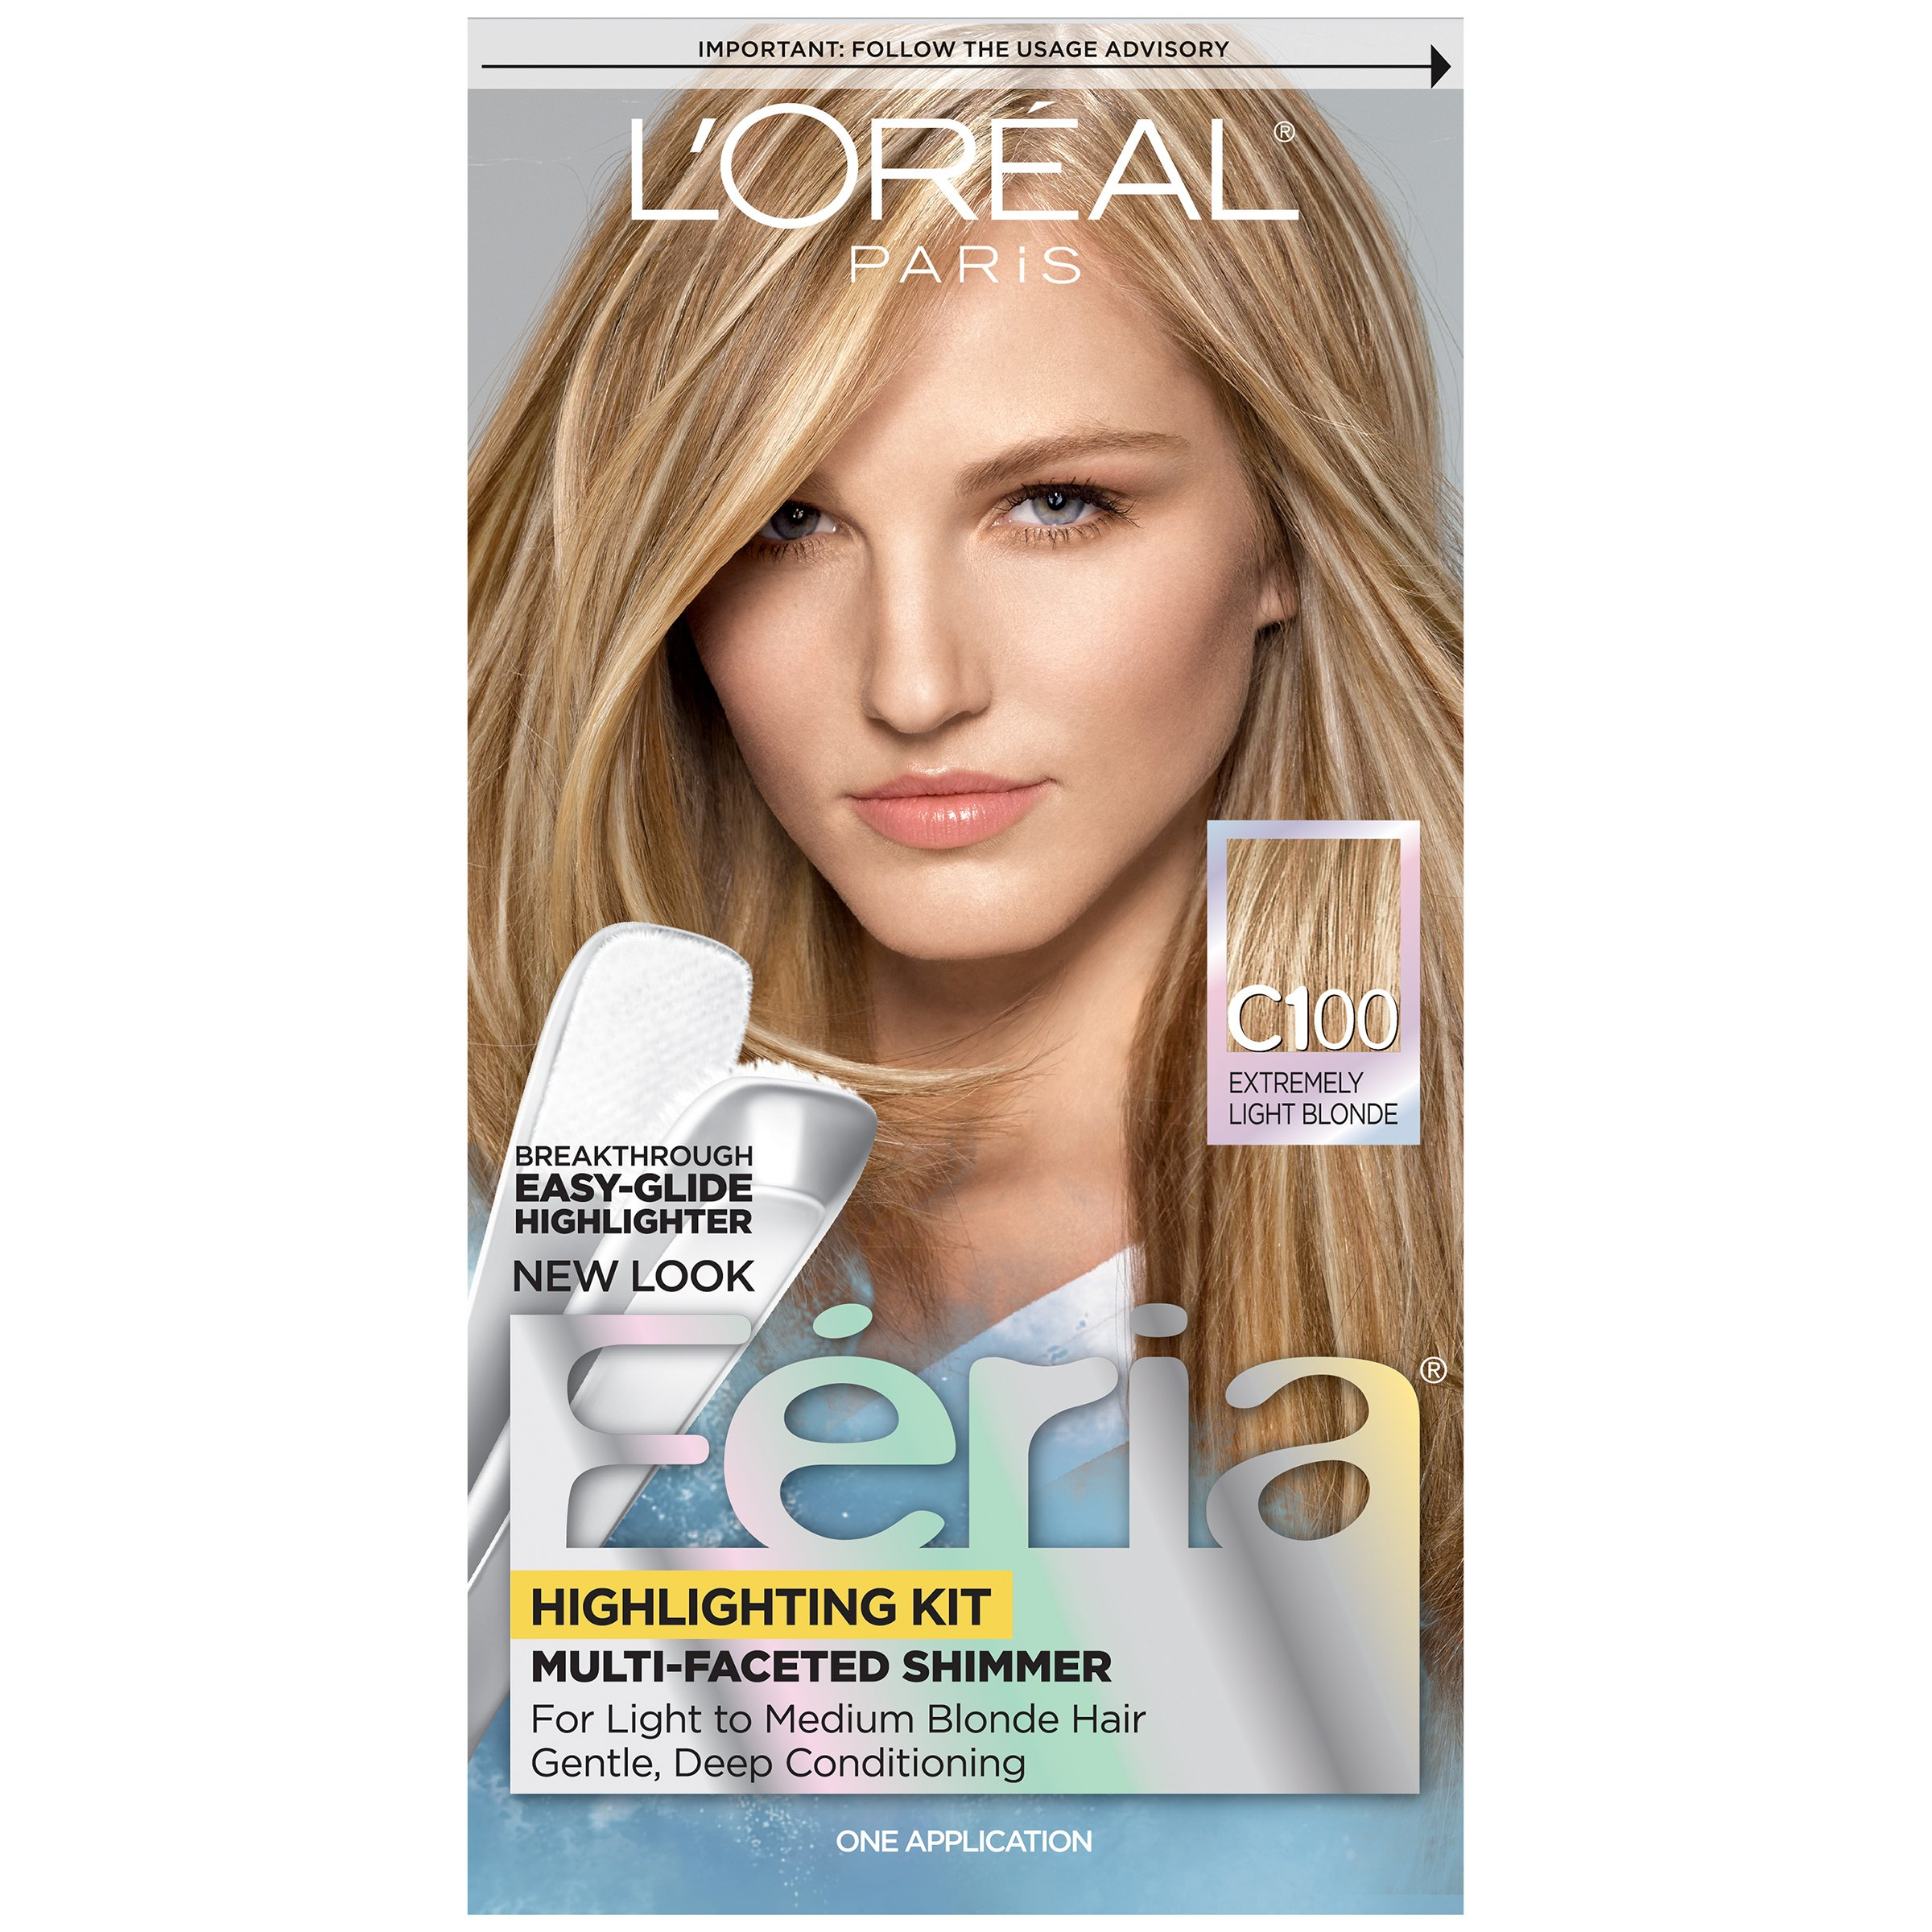 L'Oréal Paris Feria Permanent Hair Color, C100 Star Lights Extreme (Highlighting Kit)